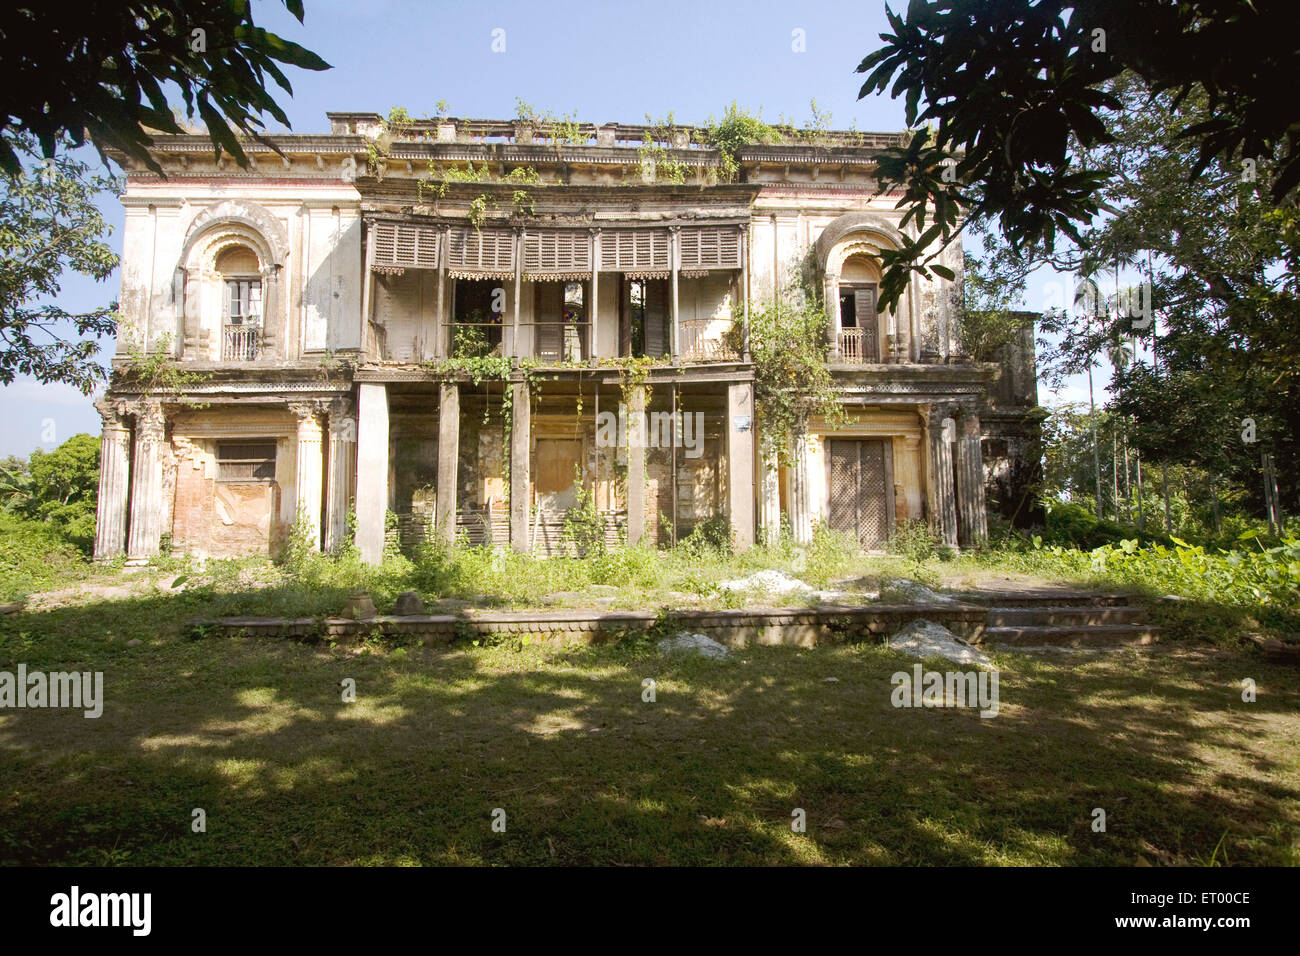 Very old  guest house neglected ; Murshidabad ; West Bengal ; India Heritage Site - Stock Image